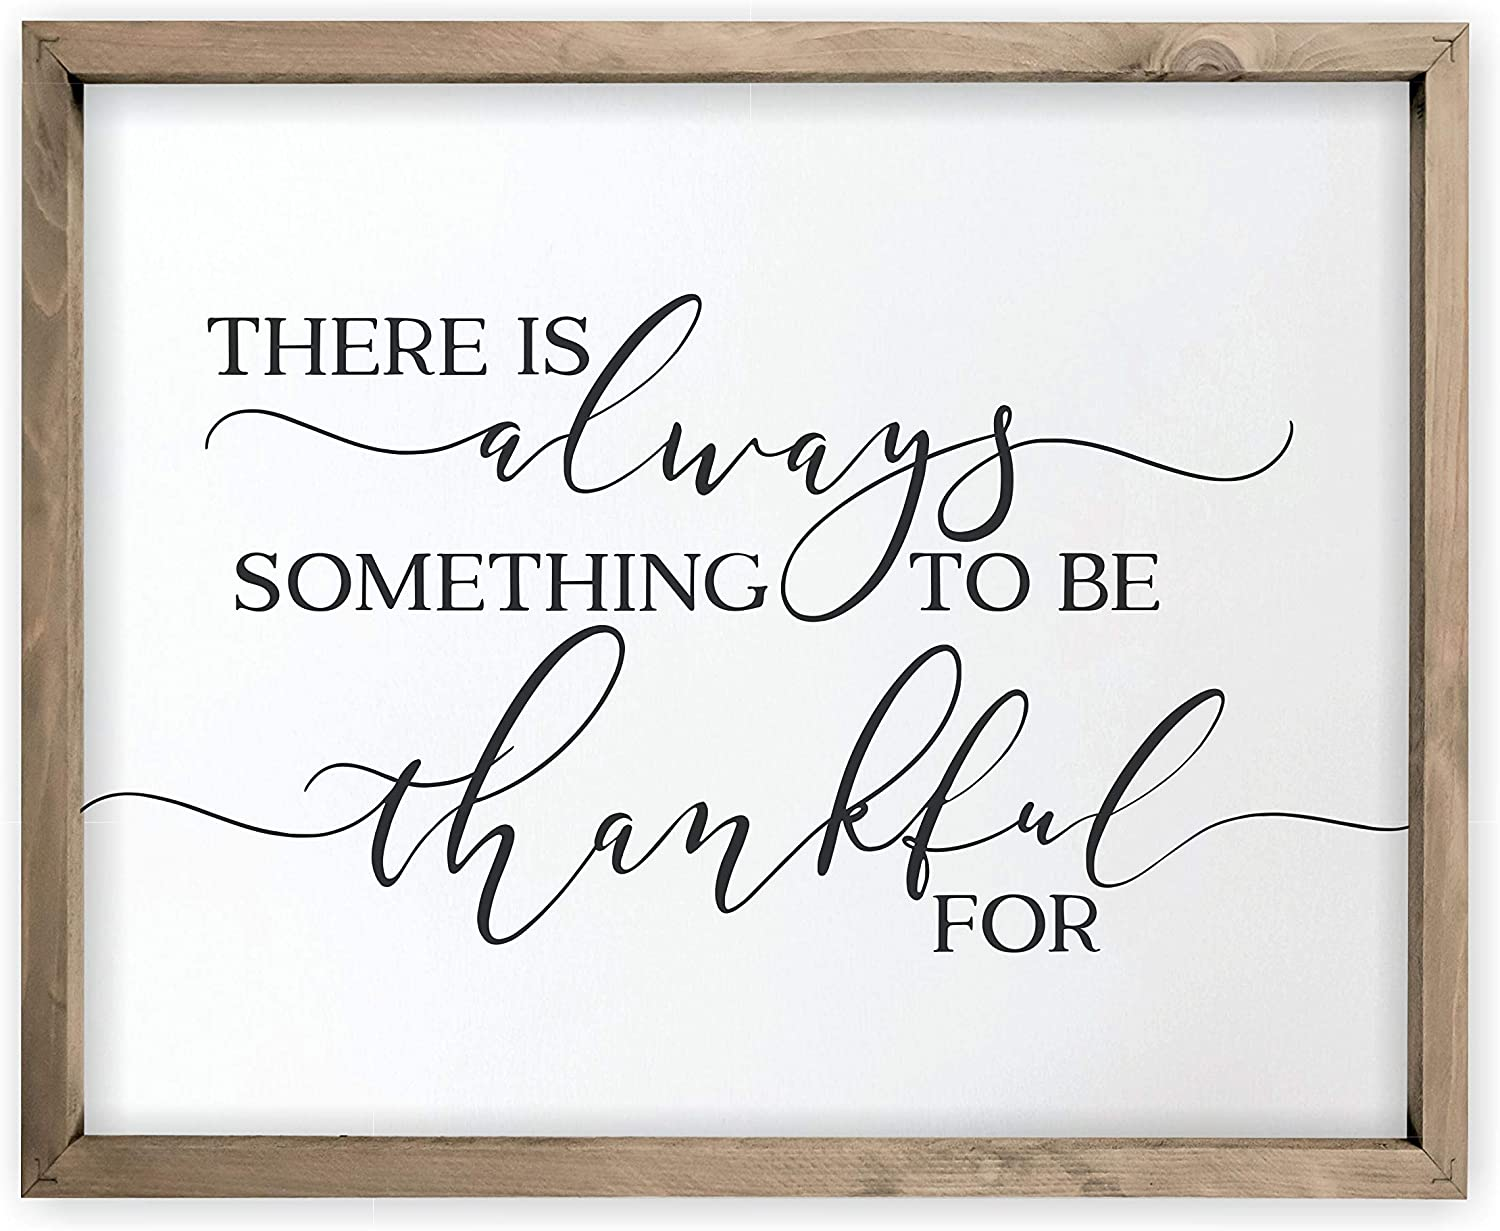 There is Always Something to be Thankful For Framed Rustic Wood Farmhouse Wall Sign 12x15